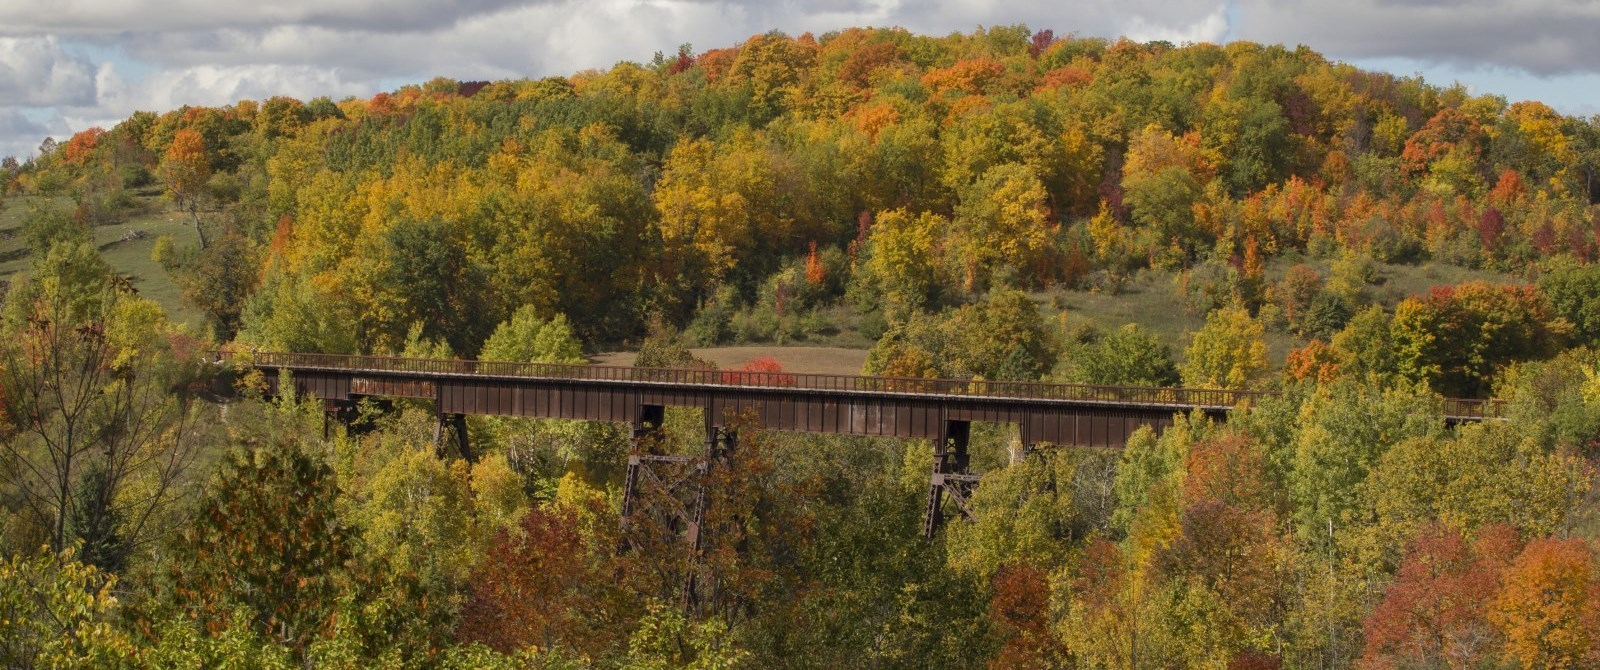 Fall image of Doubes Trestle Bridge on the Trans Canada Trail